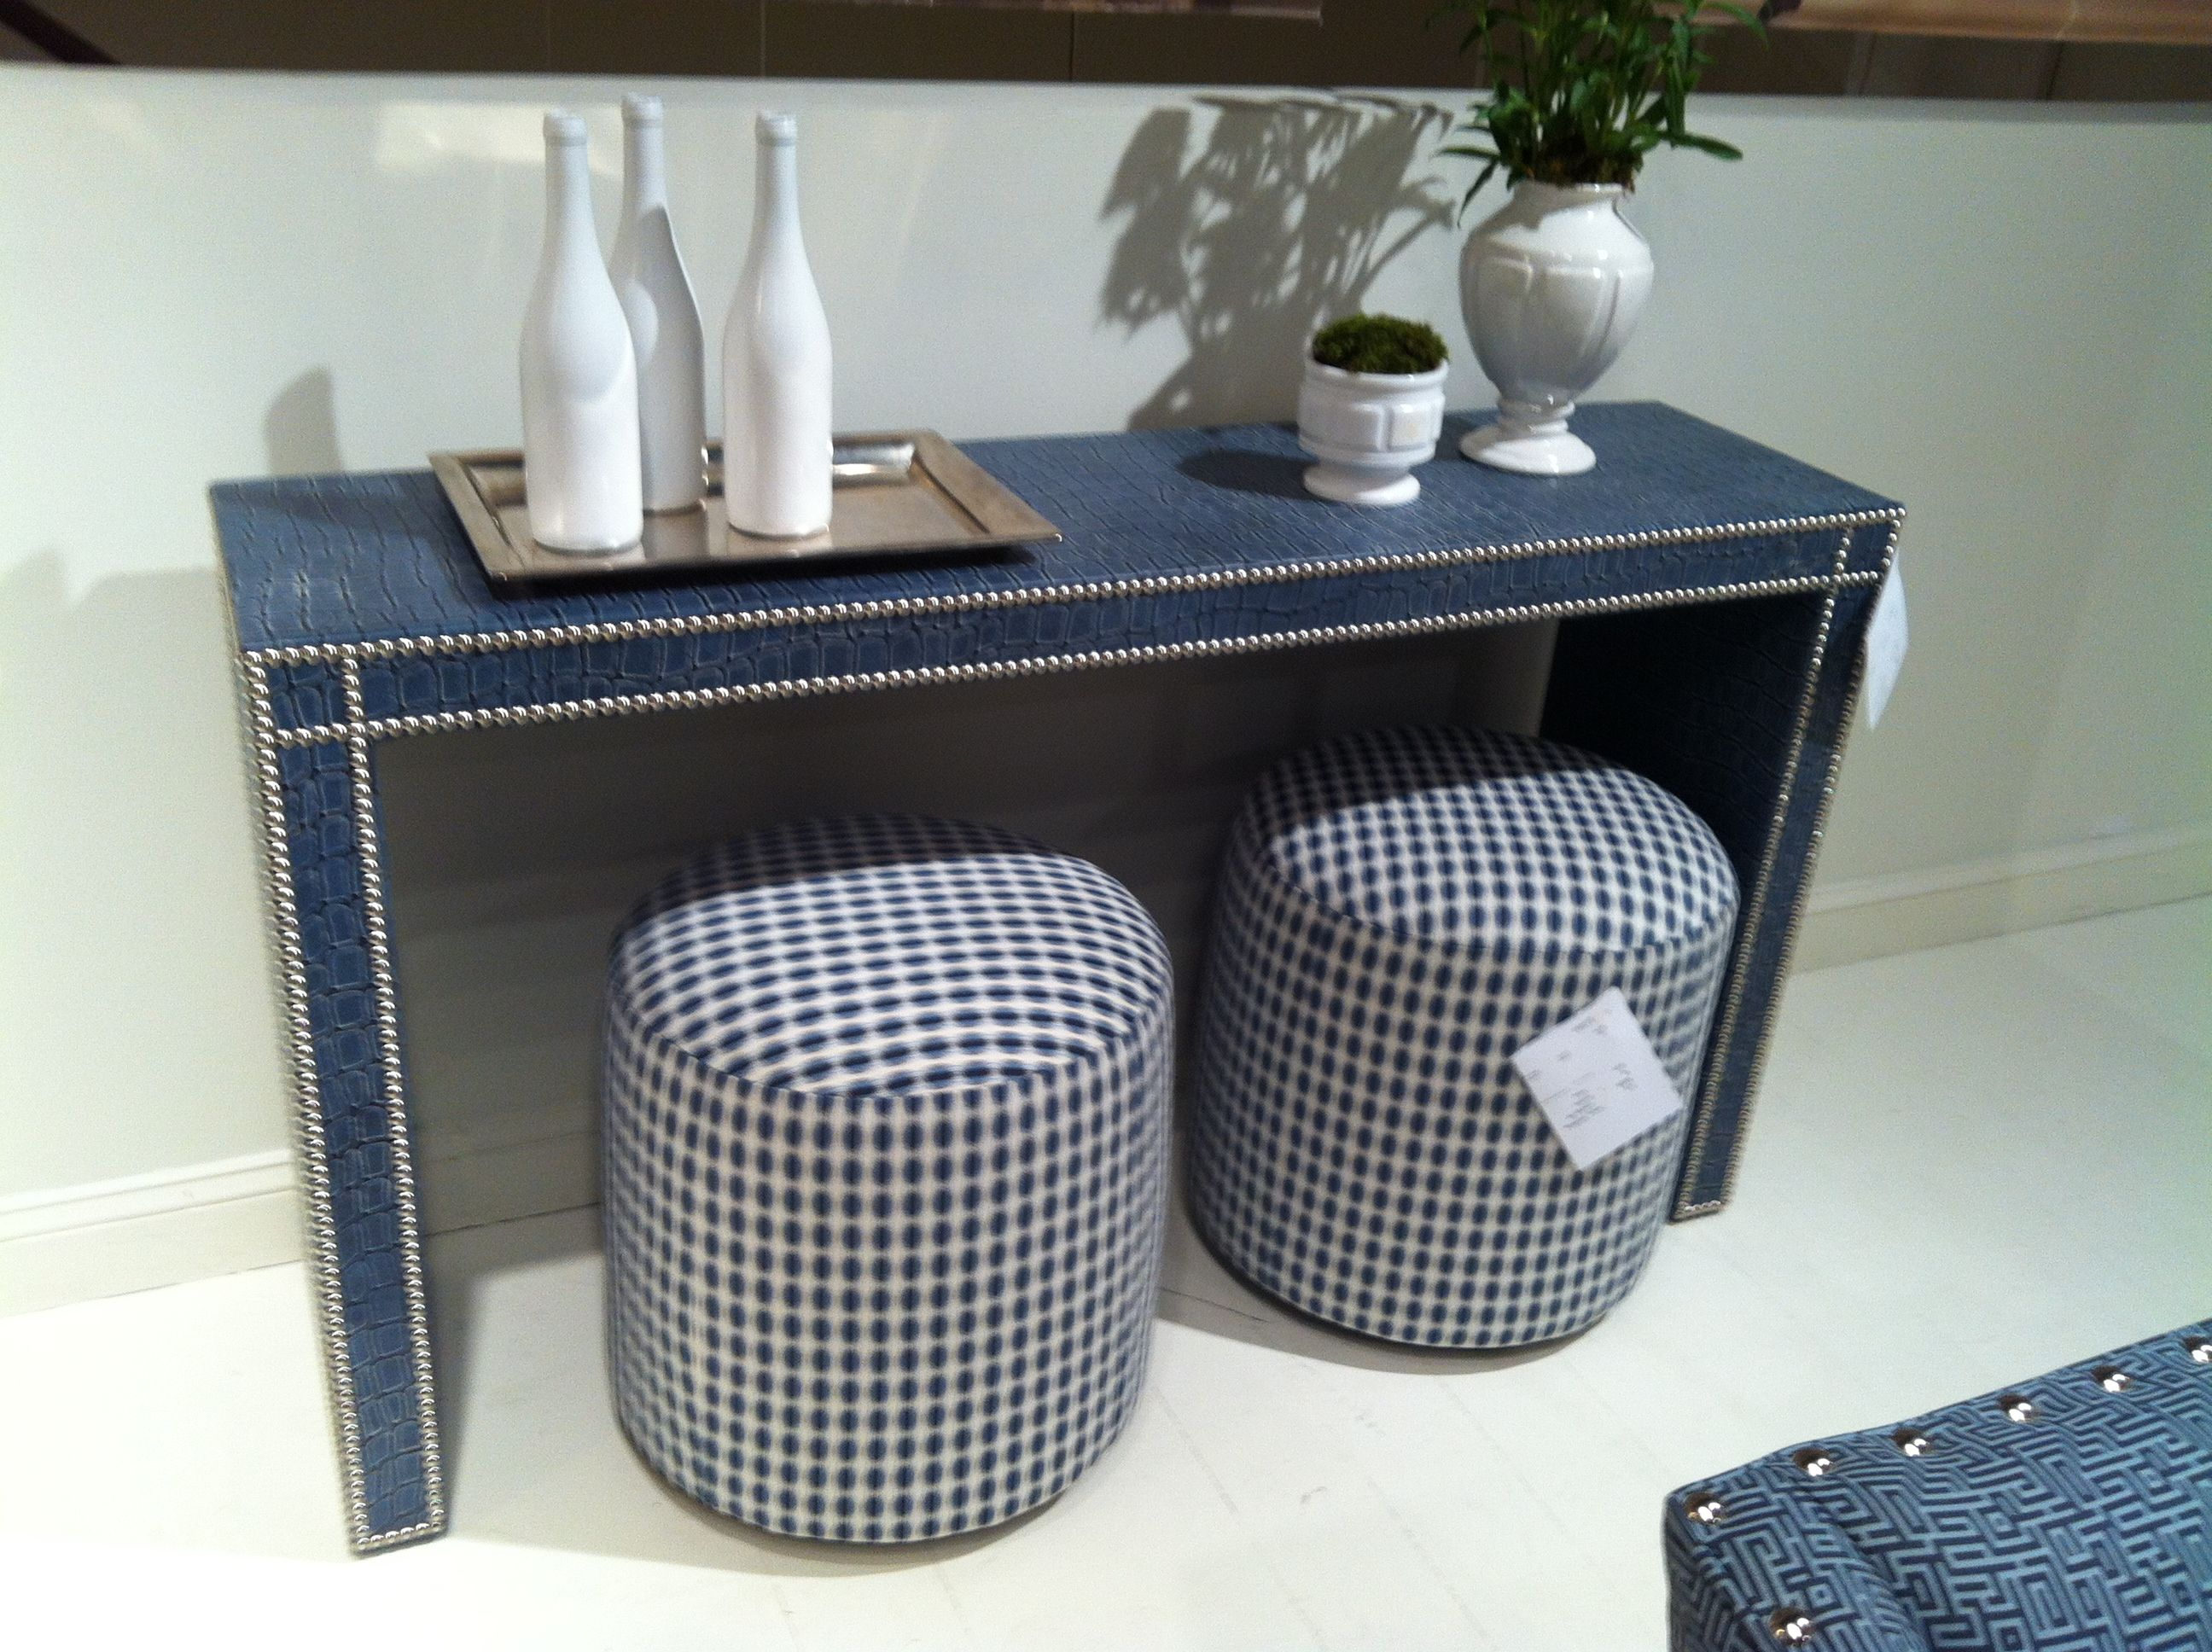 Perfect Speaking Of Upholstered, How Fun Is This Fully Upholstered Console Table?  Description From Lisascheffdesigns